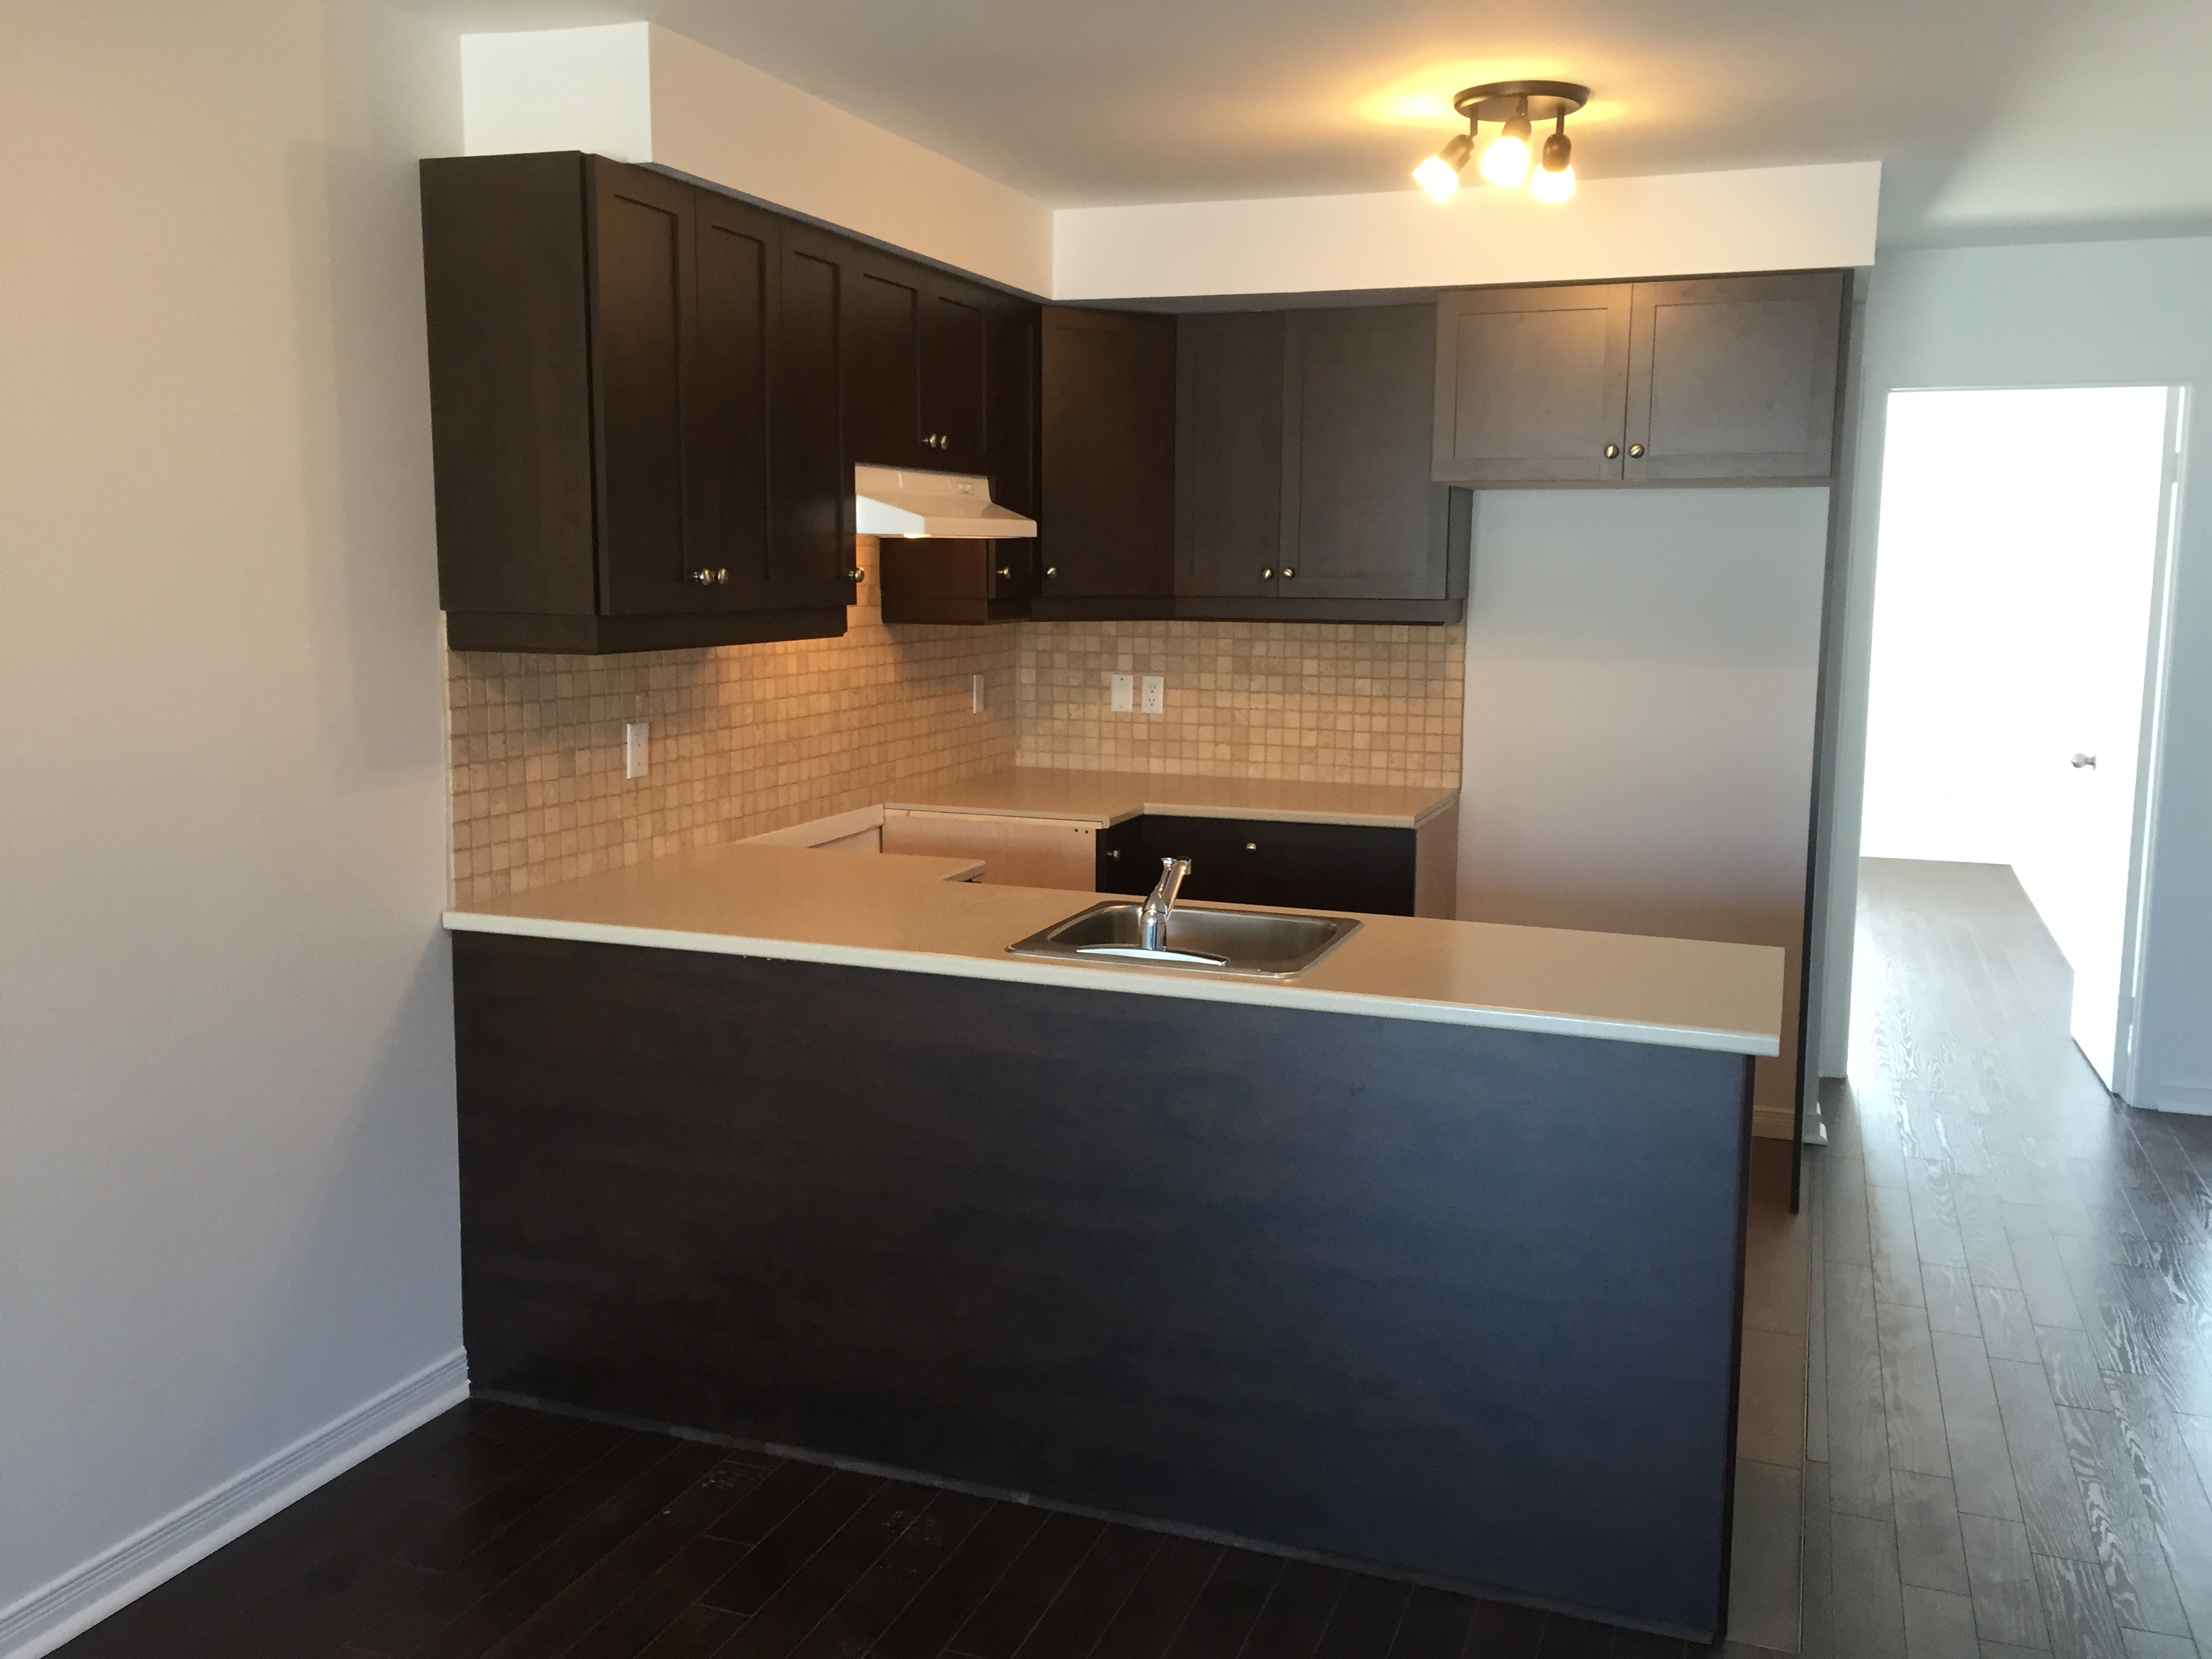 2 bedroom Apartments for rent in Pierrefonds-Roxboro at 18045-18125 Pierrefonds Boulevard - Photo 04 - RentersPages – L266033